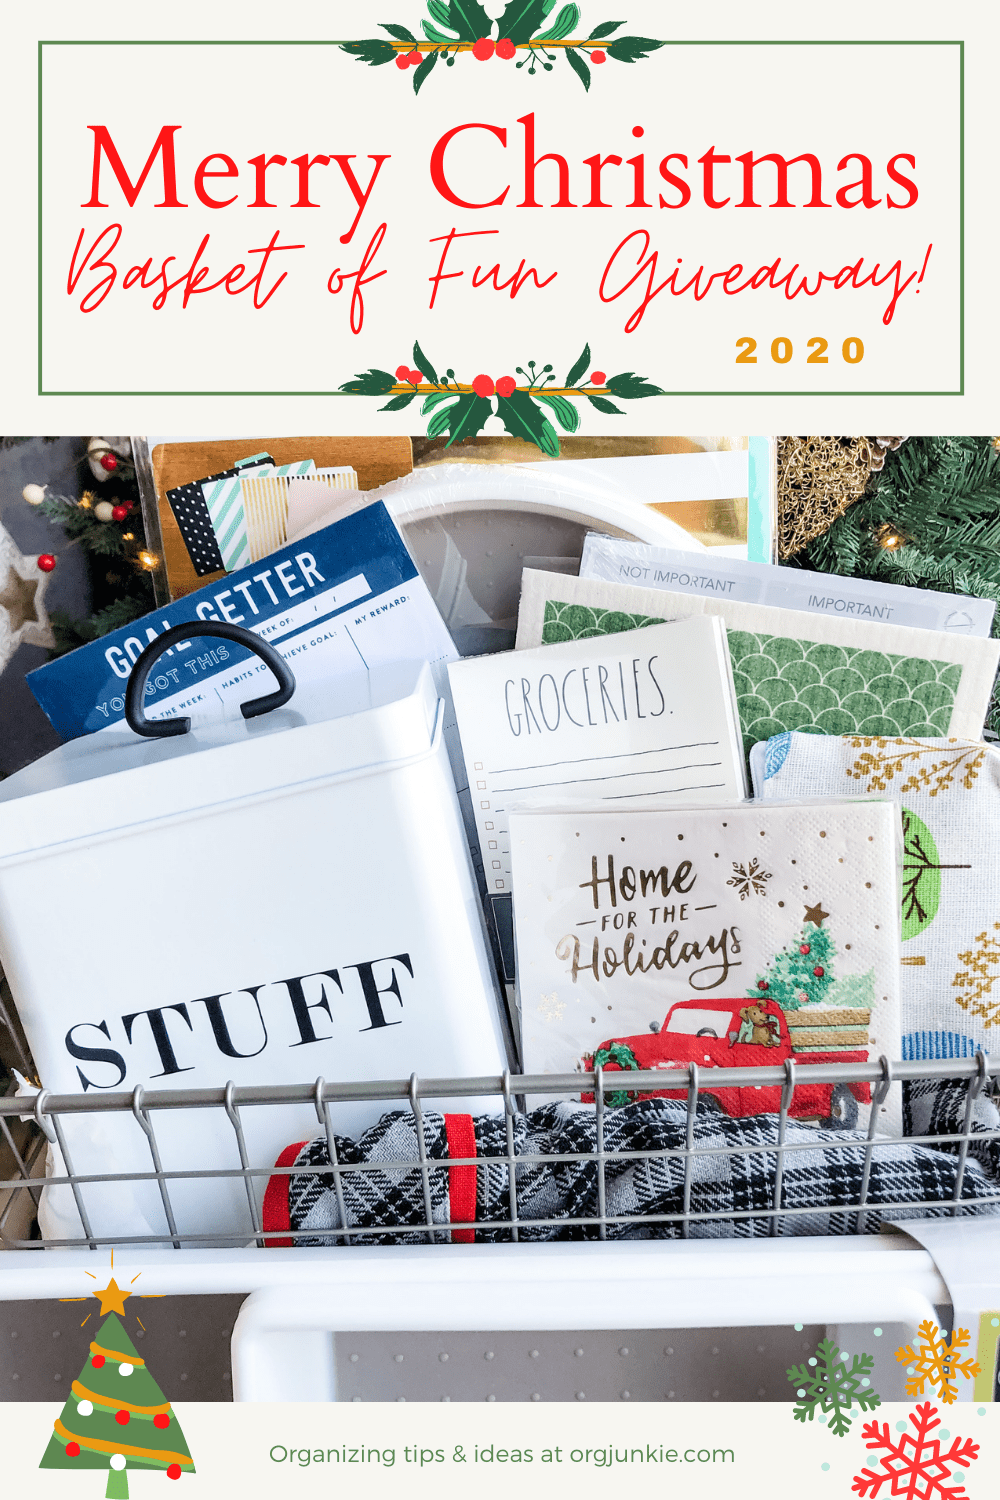 The 2020 Merry Christmas Basket of Fun Giveaway is Here! at I'm an Organizing Junkie blog